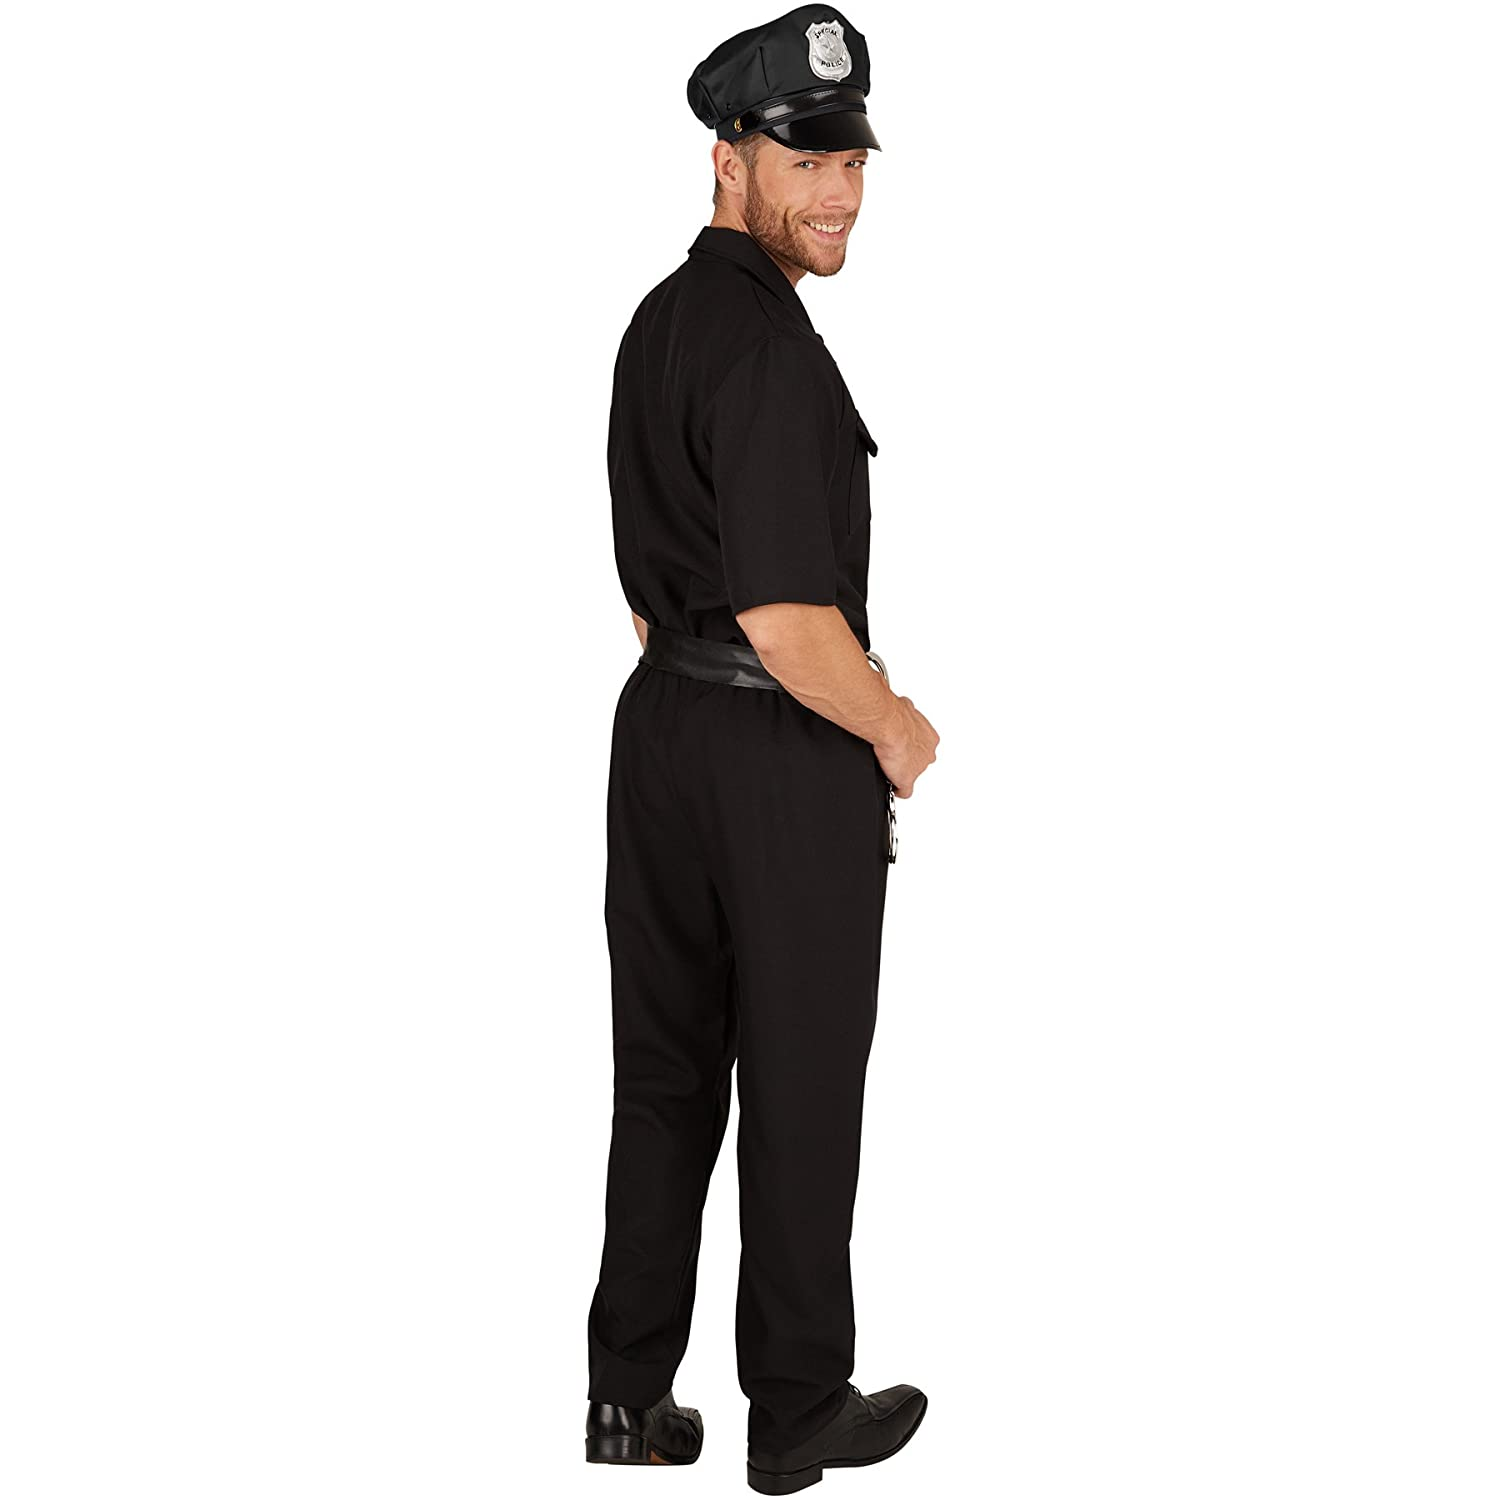 TecTake dressforfun Costume pour Homme Policier  206c62be7be